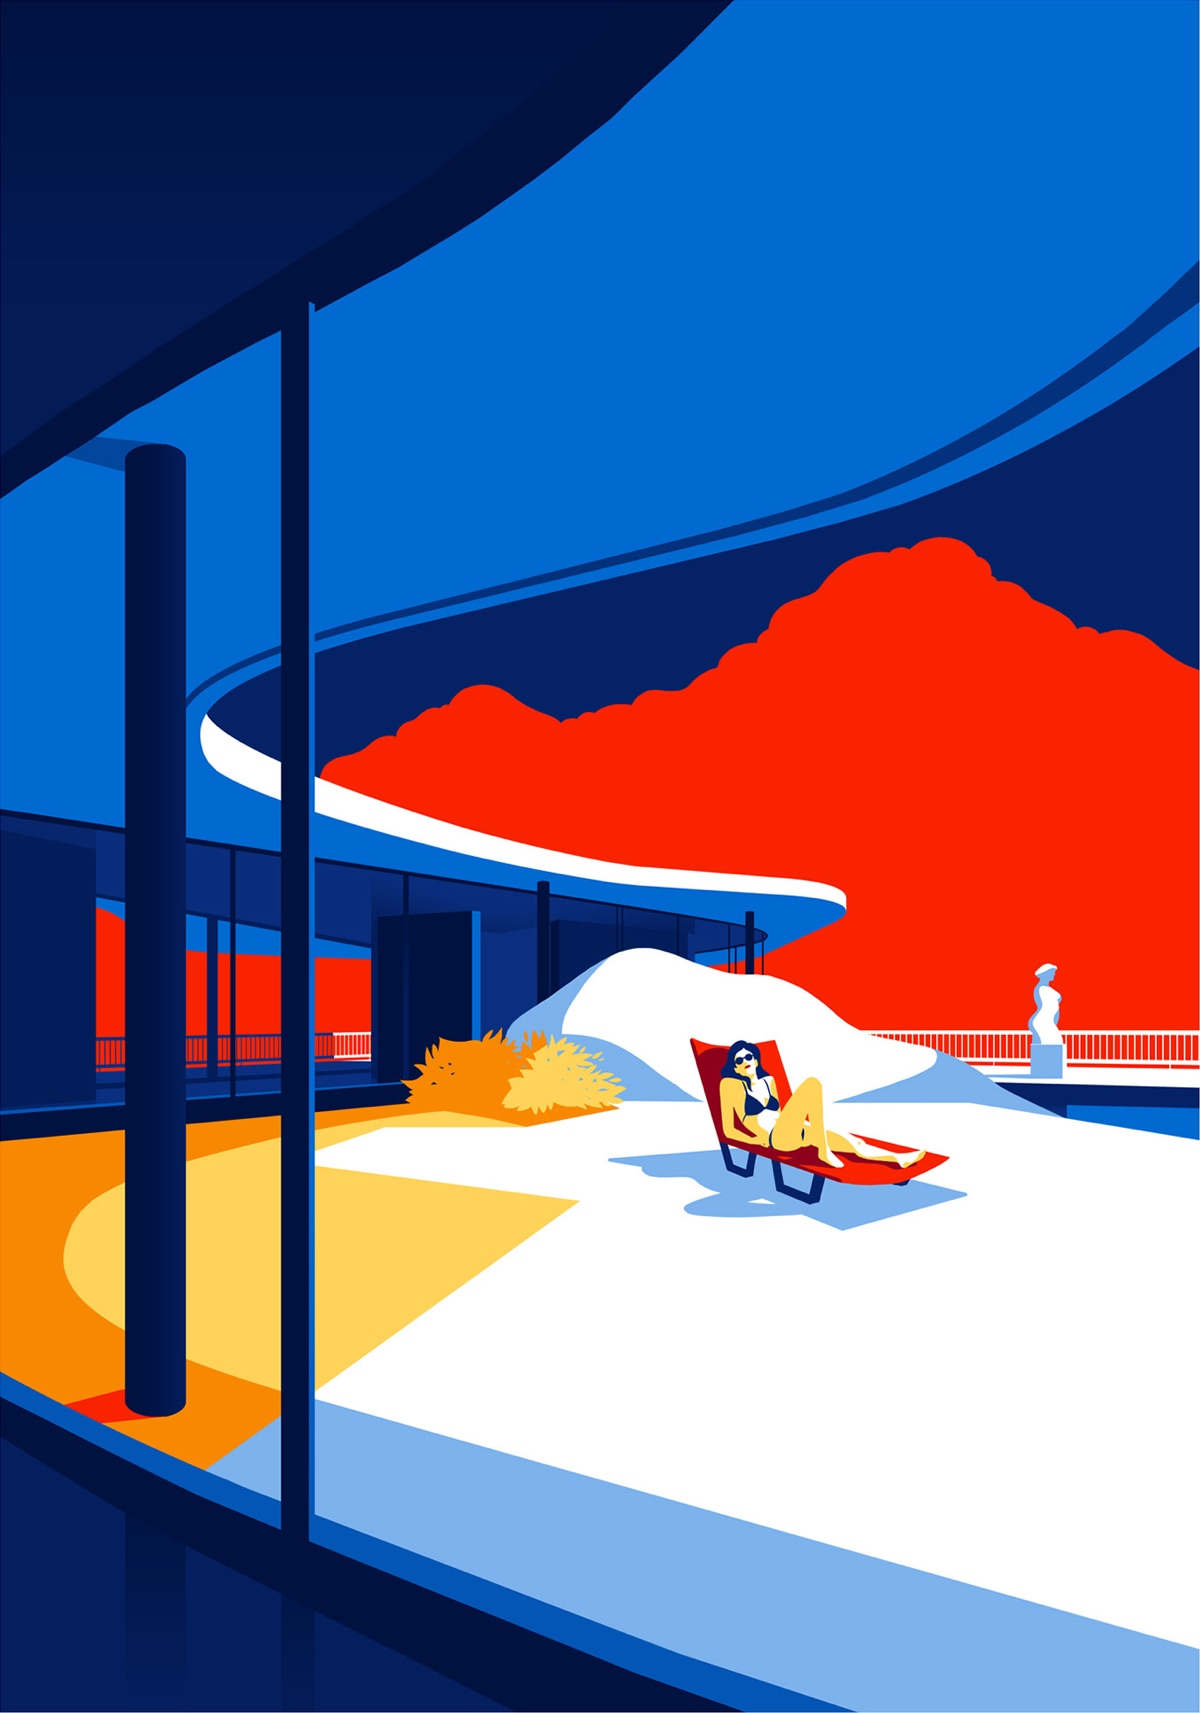 oscar-niemeyer-architecture-illustrations-levente-szabo-9